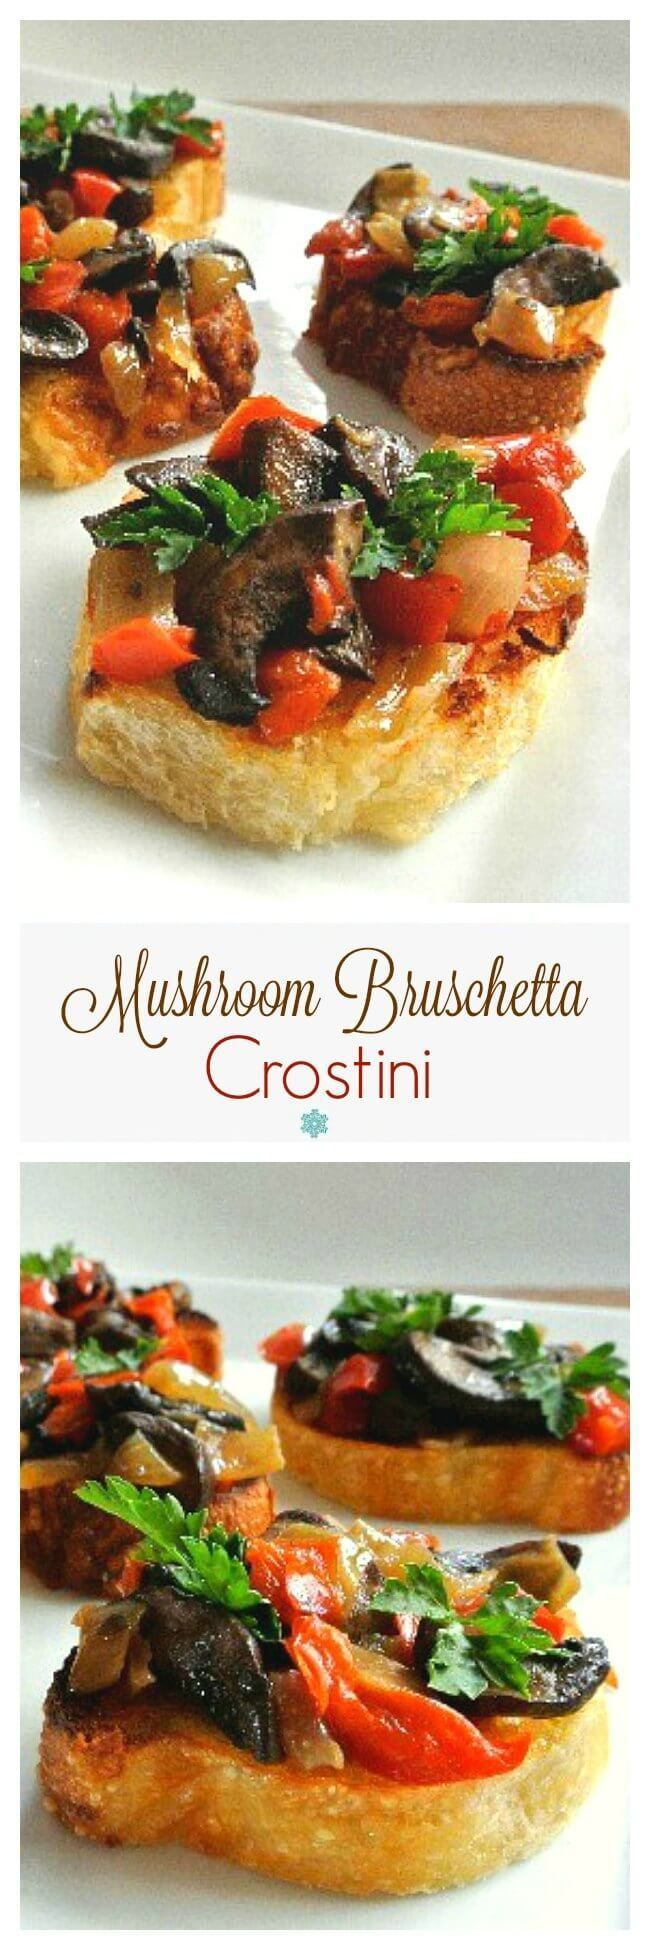 Mushroom Bruschetta Crostini is a fantastic appetizer that has only 6 ingredients. It comes together quickly for perfect Mediterranean classic flavors. ~ https://veganinthefreezer.com